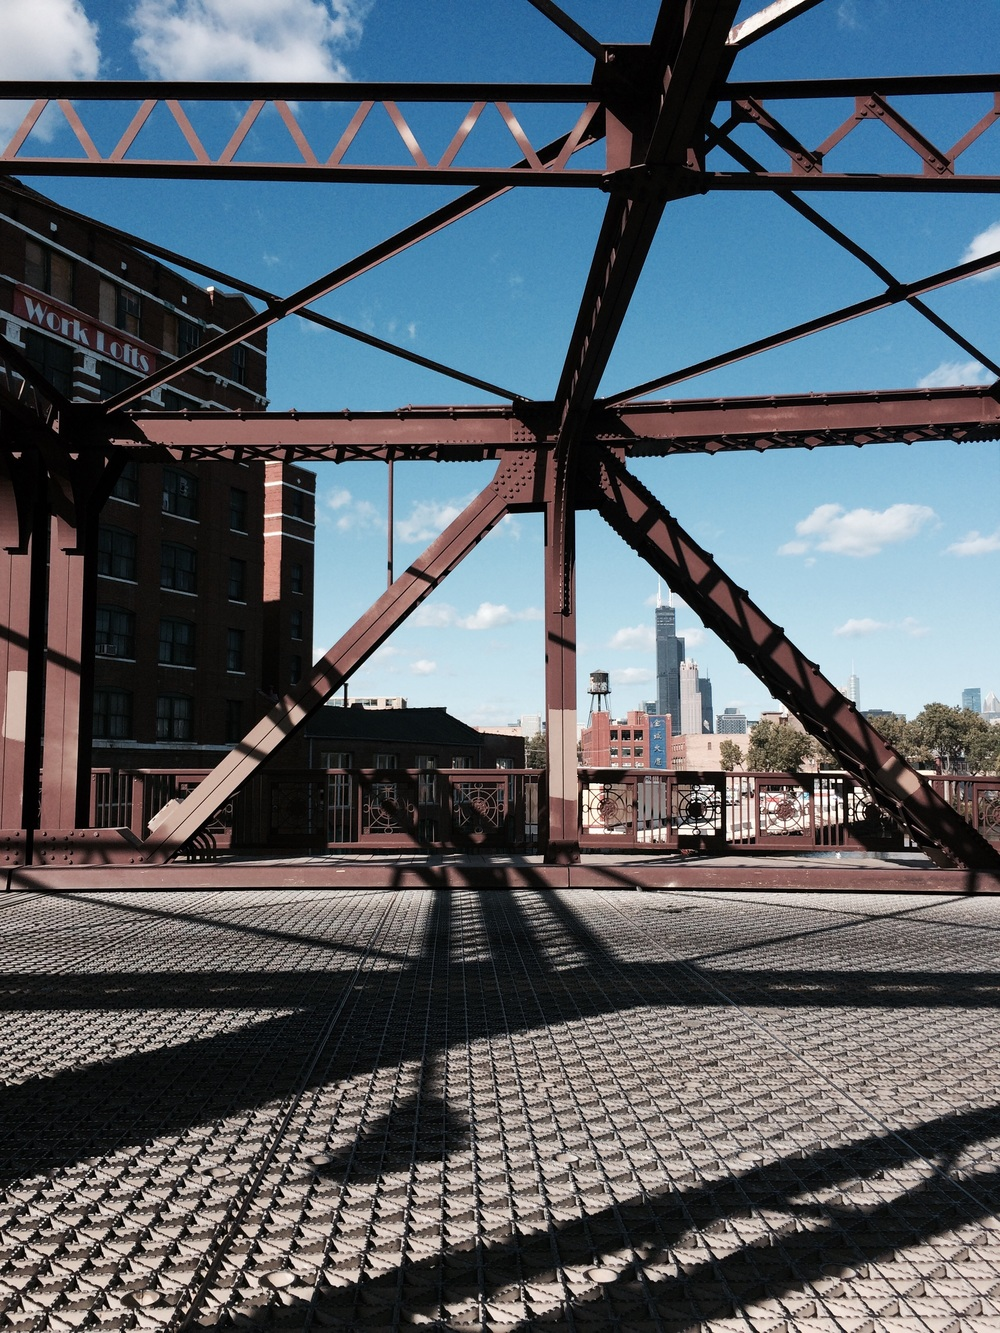 Cermak bridge, Chinatown.